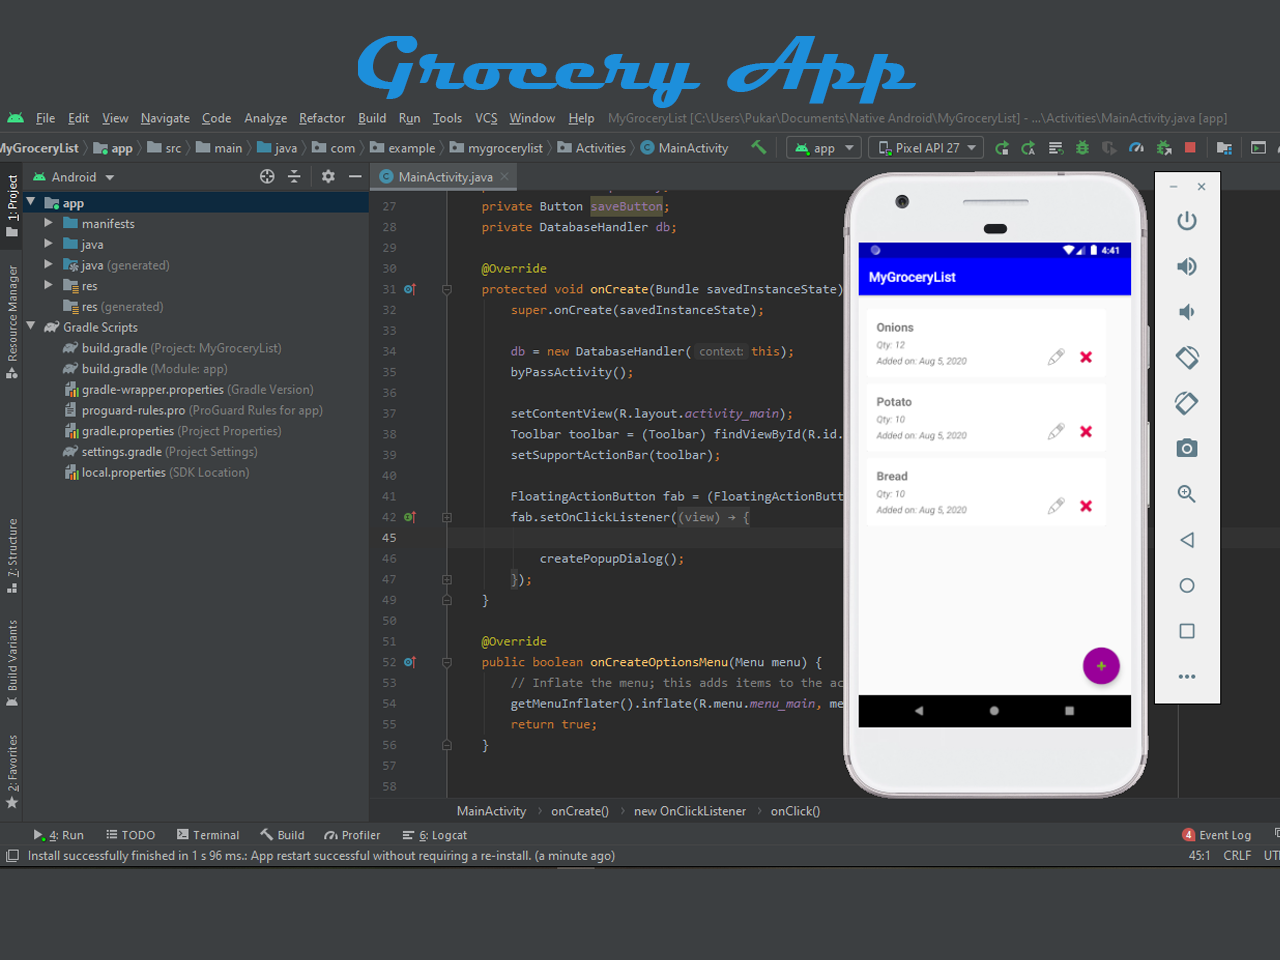 Grocery app in android with Source code